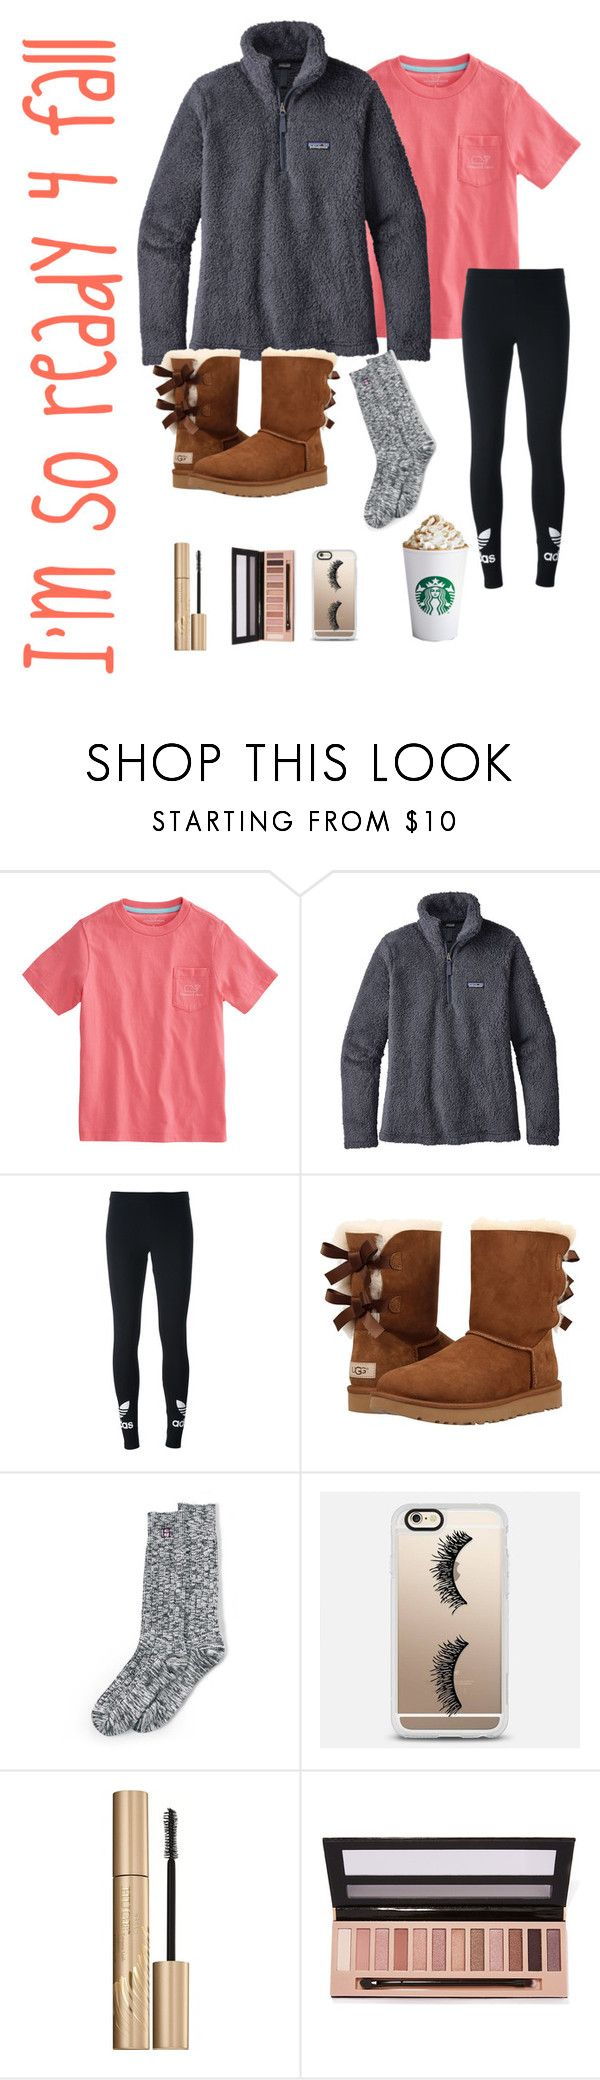 """I'm like ""um....... Hello...where is cooler weather??"" "" by heyitskatherine1022 ❤ liked on Polyvore featuring Vineyard Vines, Patagonia, adidas Originals, UGG, Lands' End, Casetify, Stila and L.A. Girl"